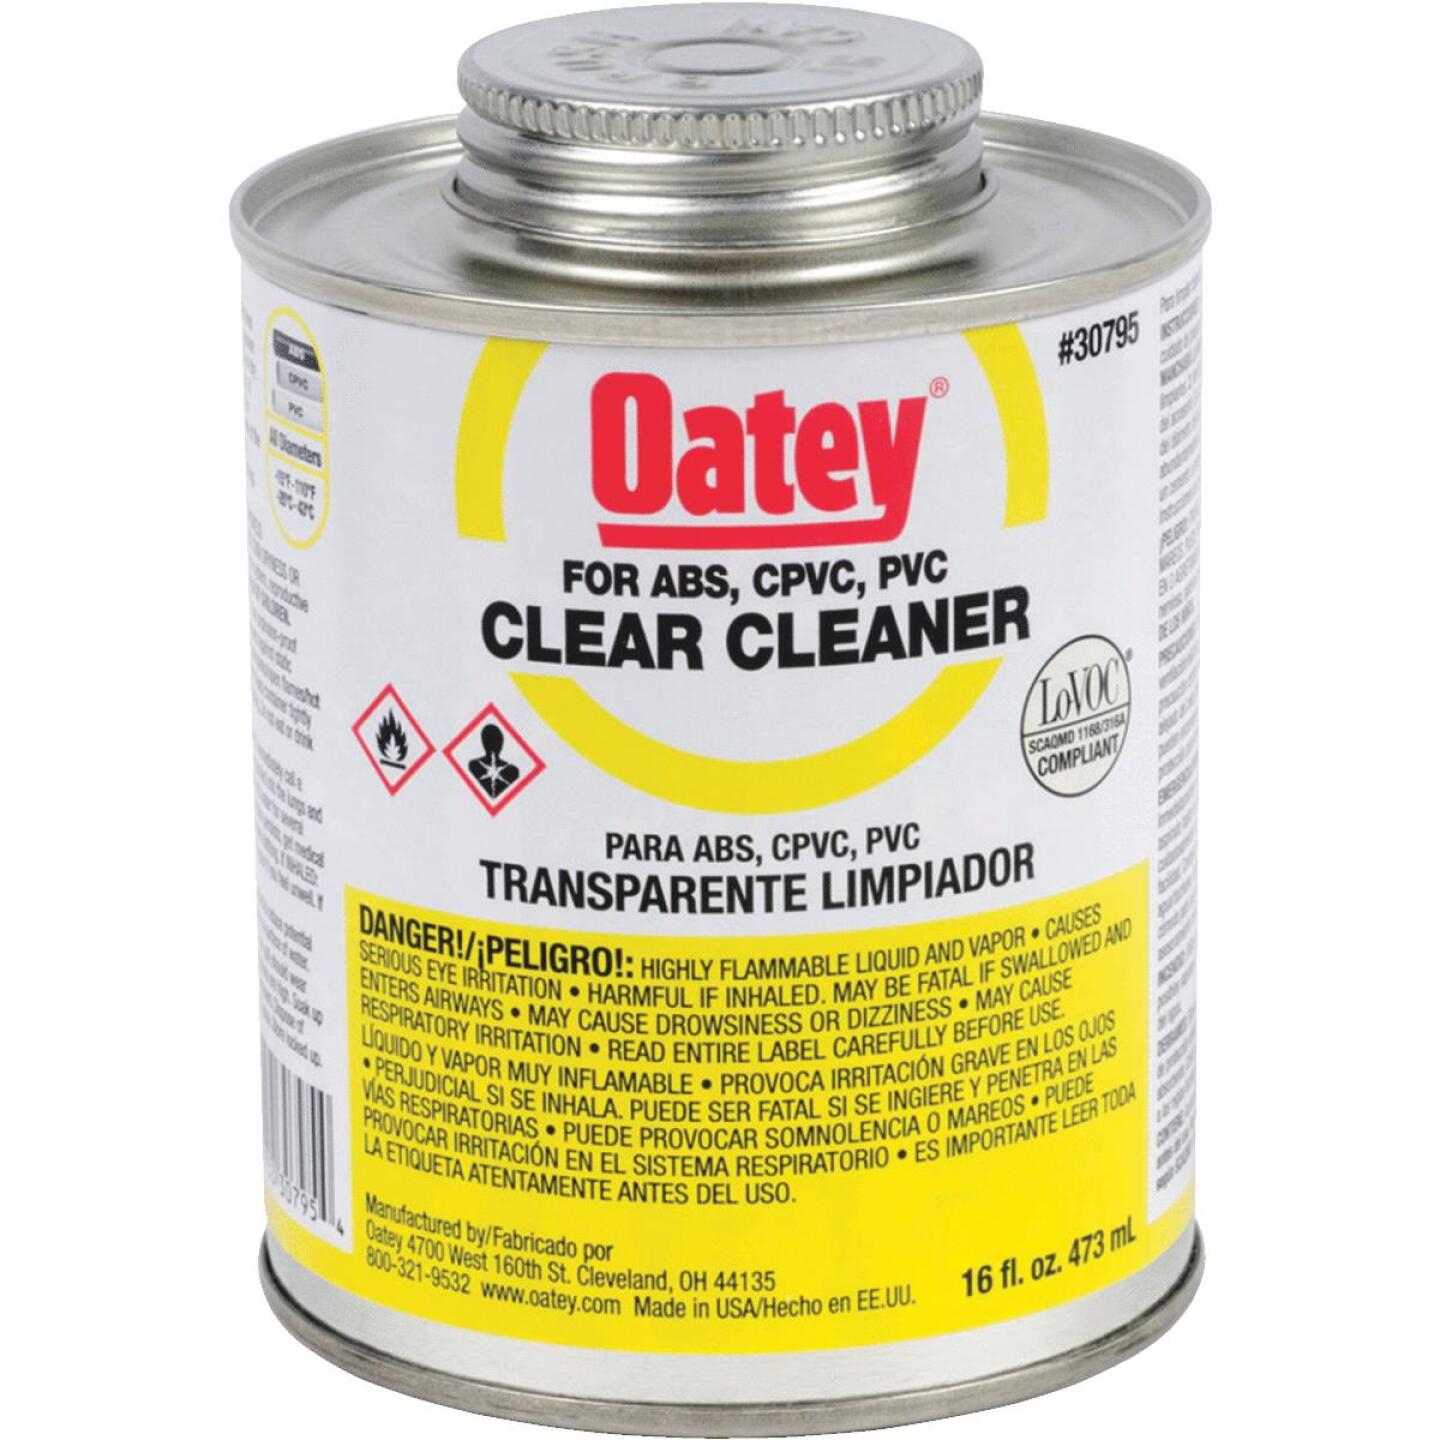 Oatey 16 Oz. All-Purpose Clear PVC Cleaner Image 1